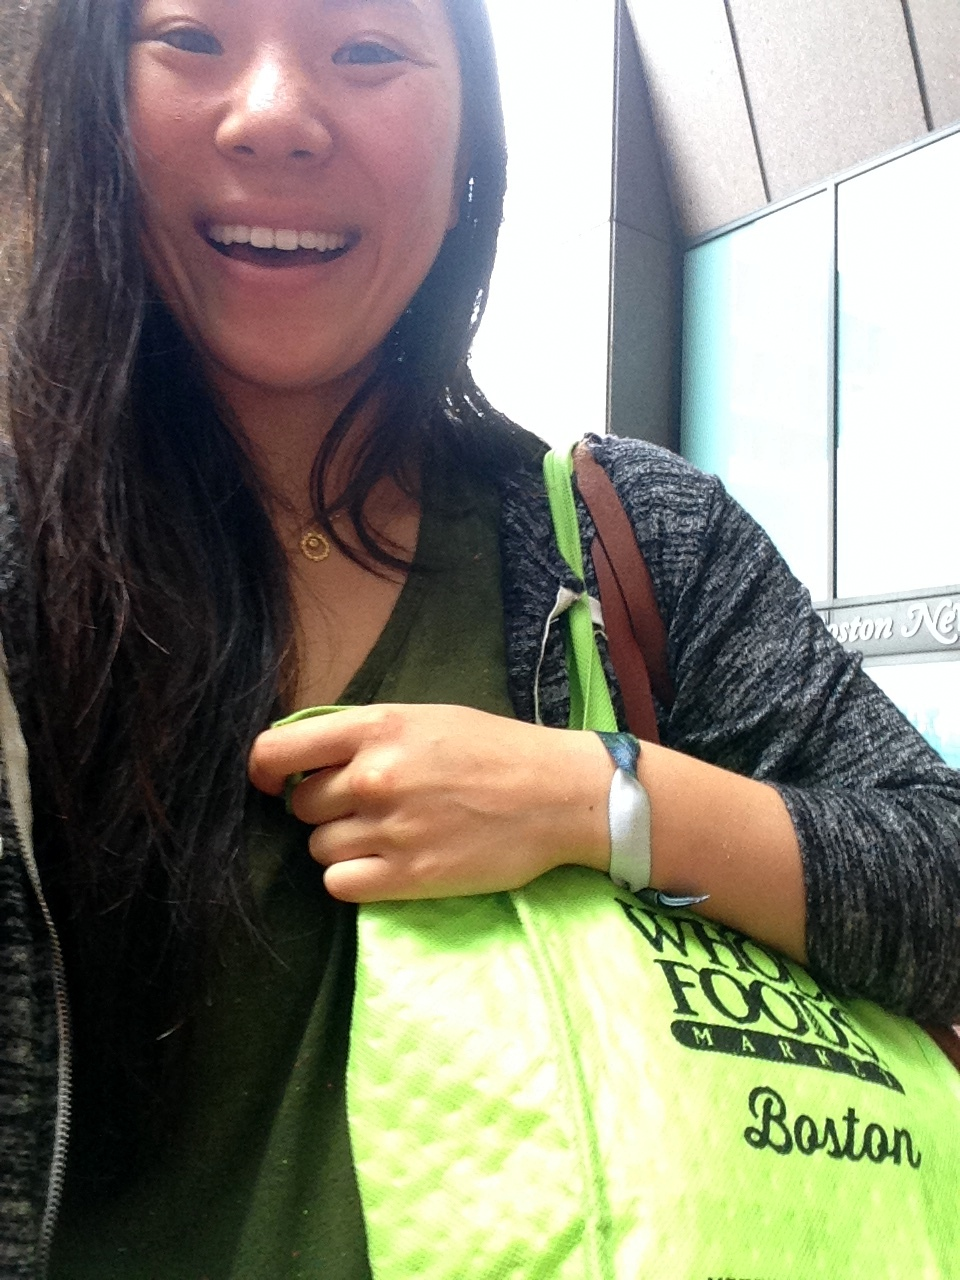 so pumped to be carrying a Whole Foods bag full of juice — it fits perfectly!